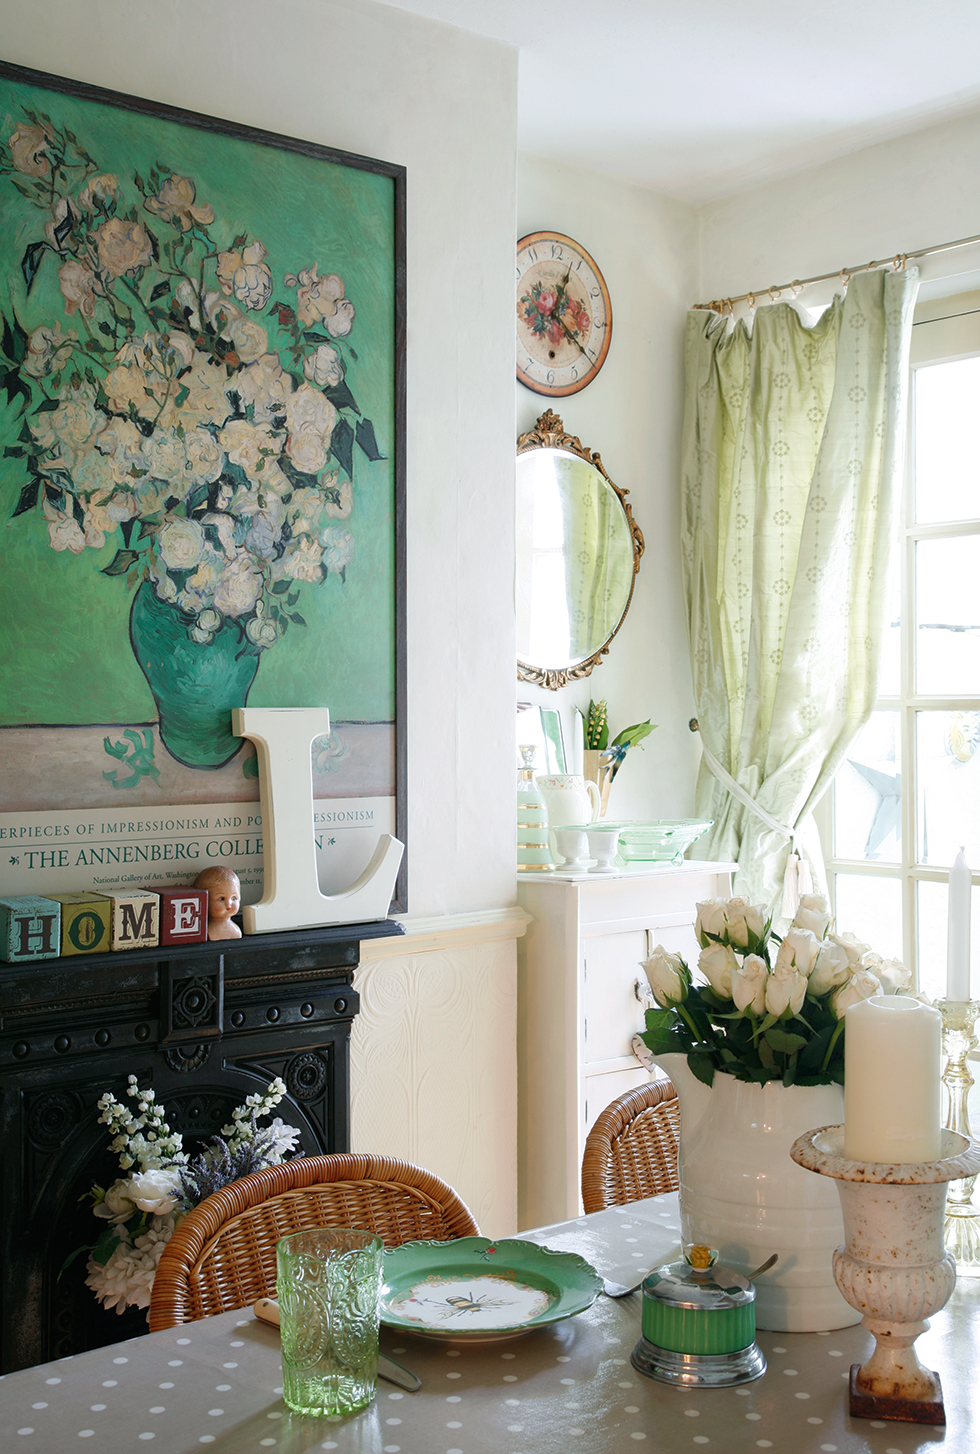 Dining room with a botanical, outdoor feel